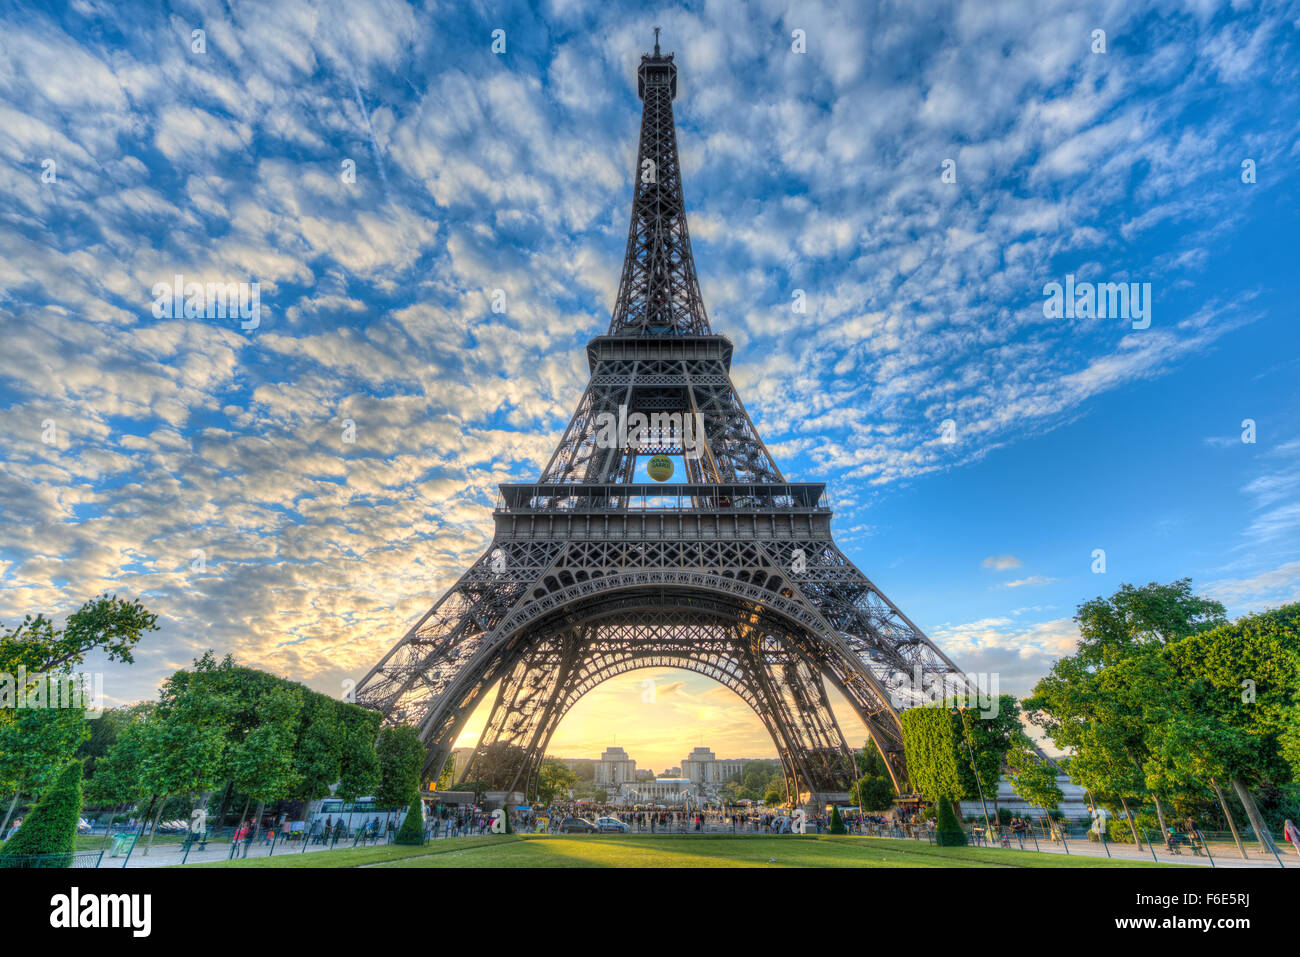 L'humeur du soir, la Tour Eiffel, du Champ de Mars, Paris, Ile-de-France, France Photo Stock